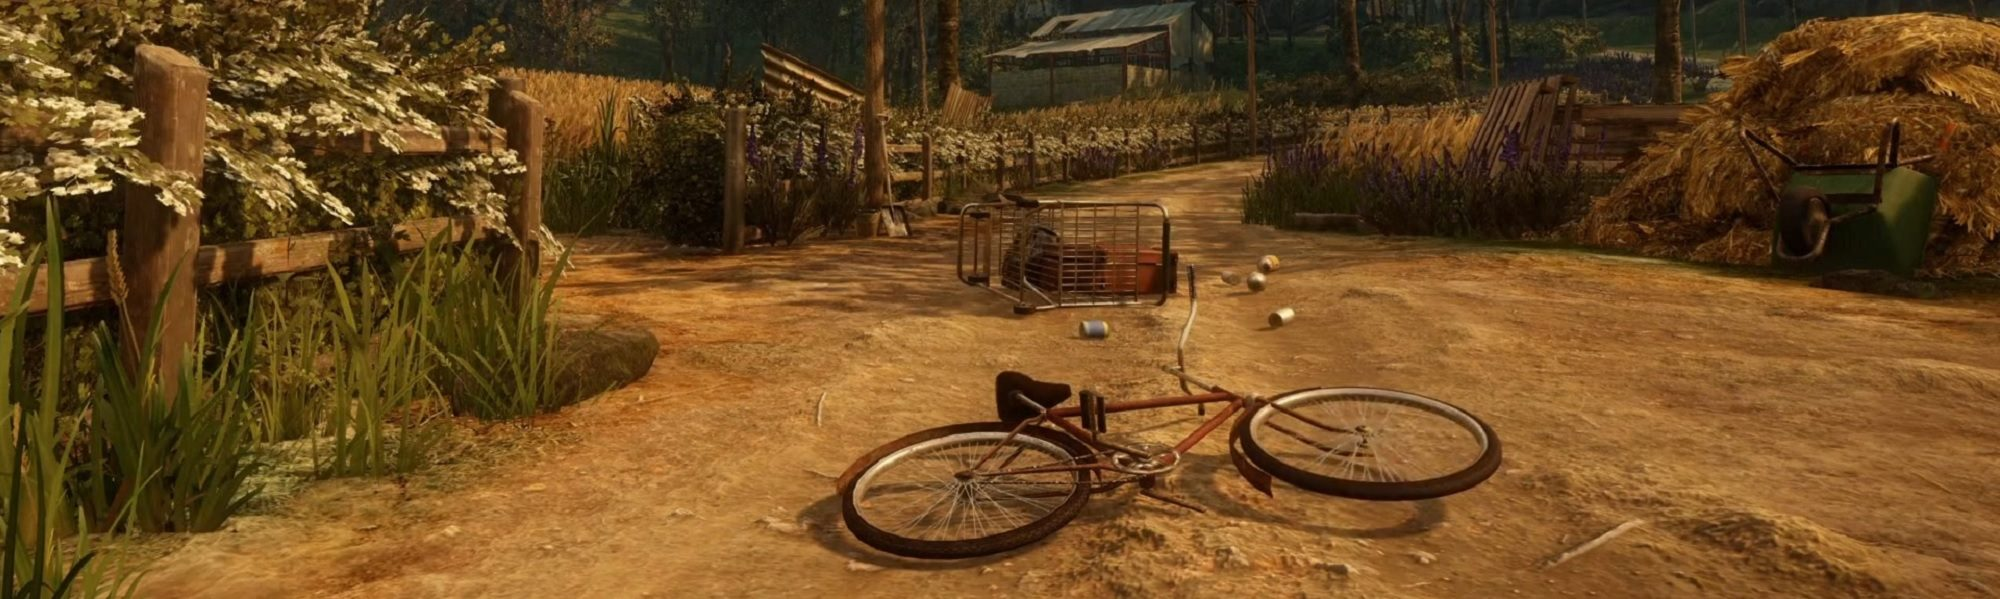 Everybody's Gone to the Capture